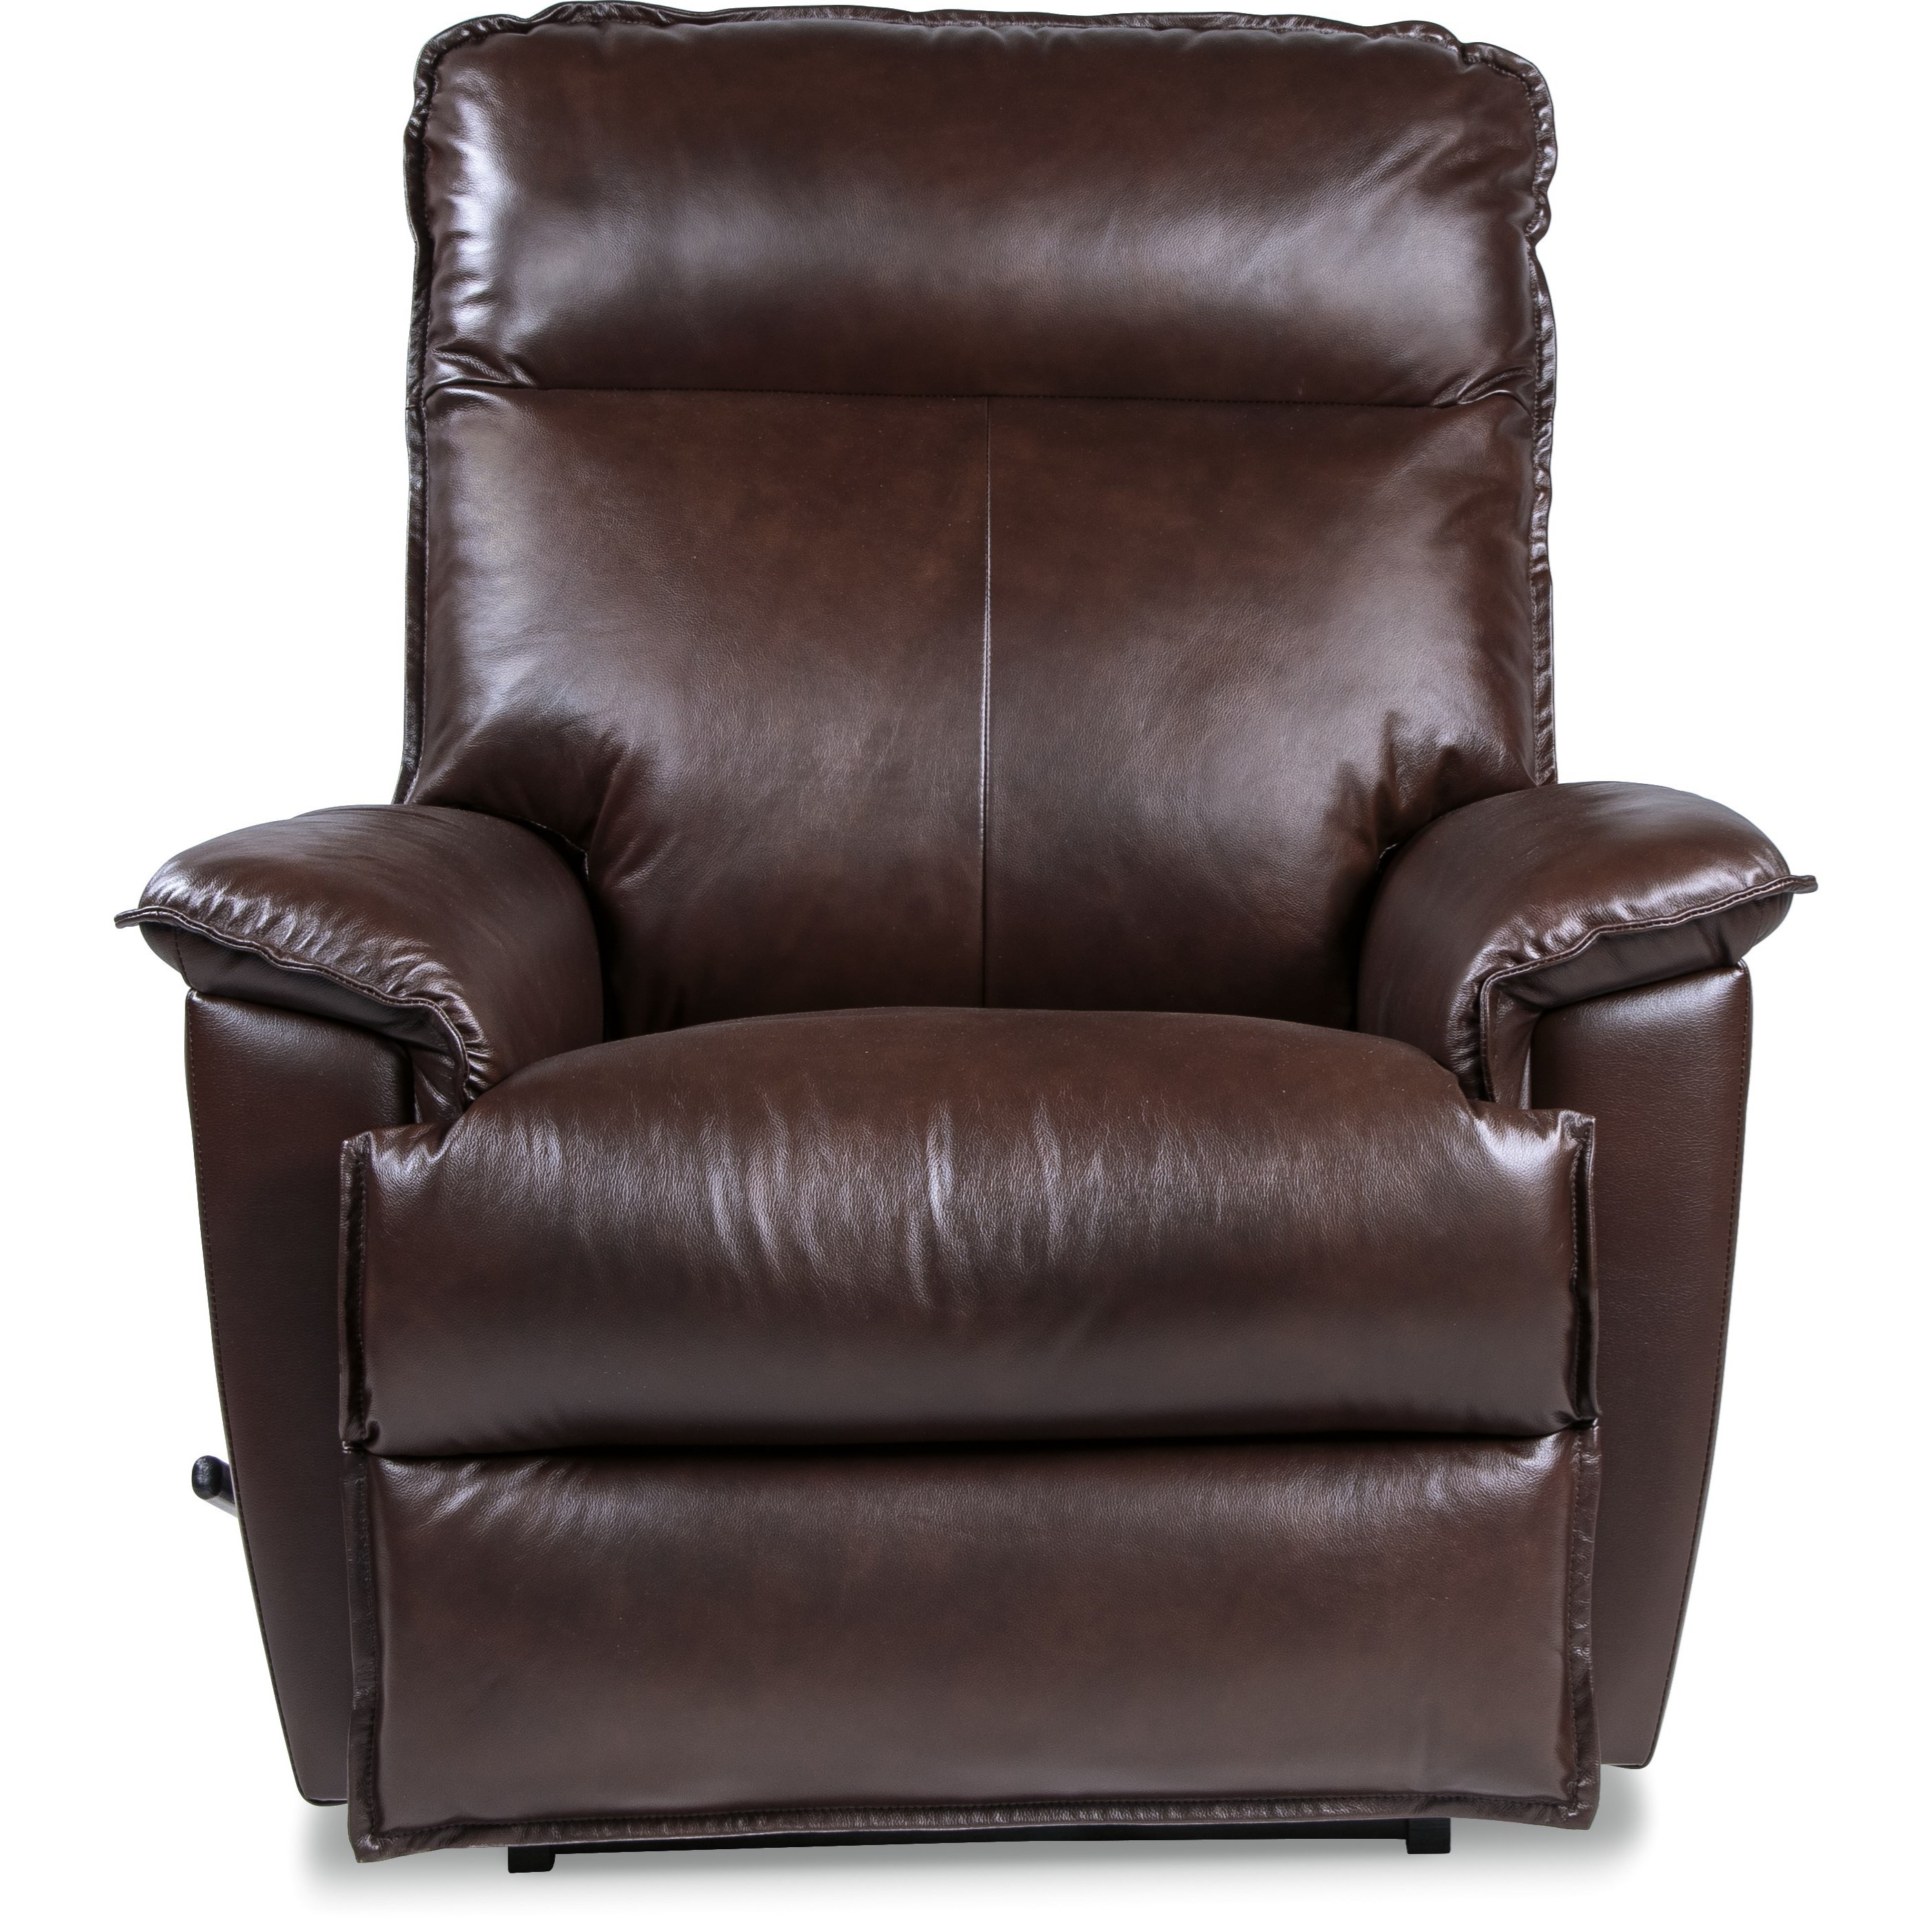 Jay Rocking Recliner by La-Z-Boy at Lindy's Furniture Company